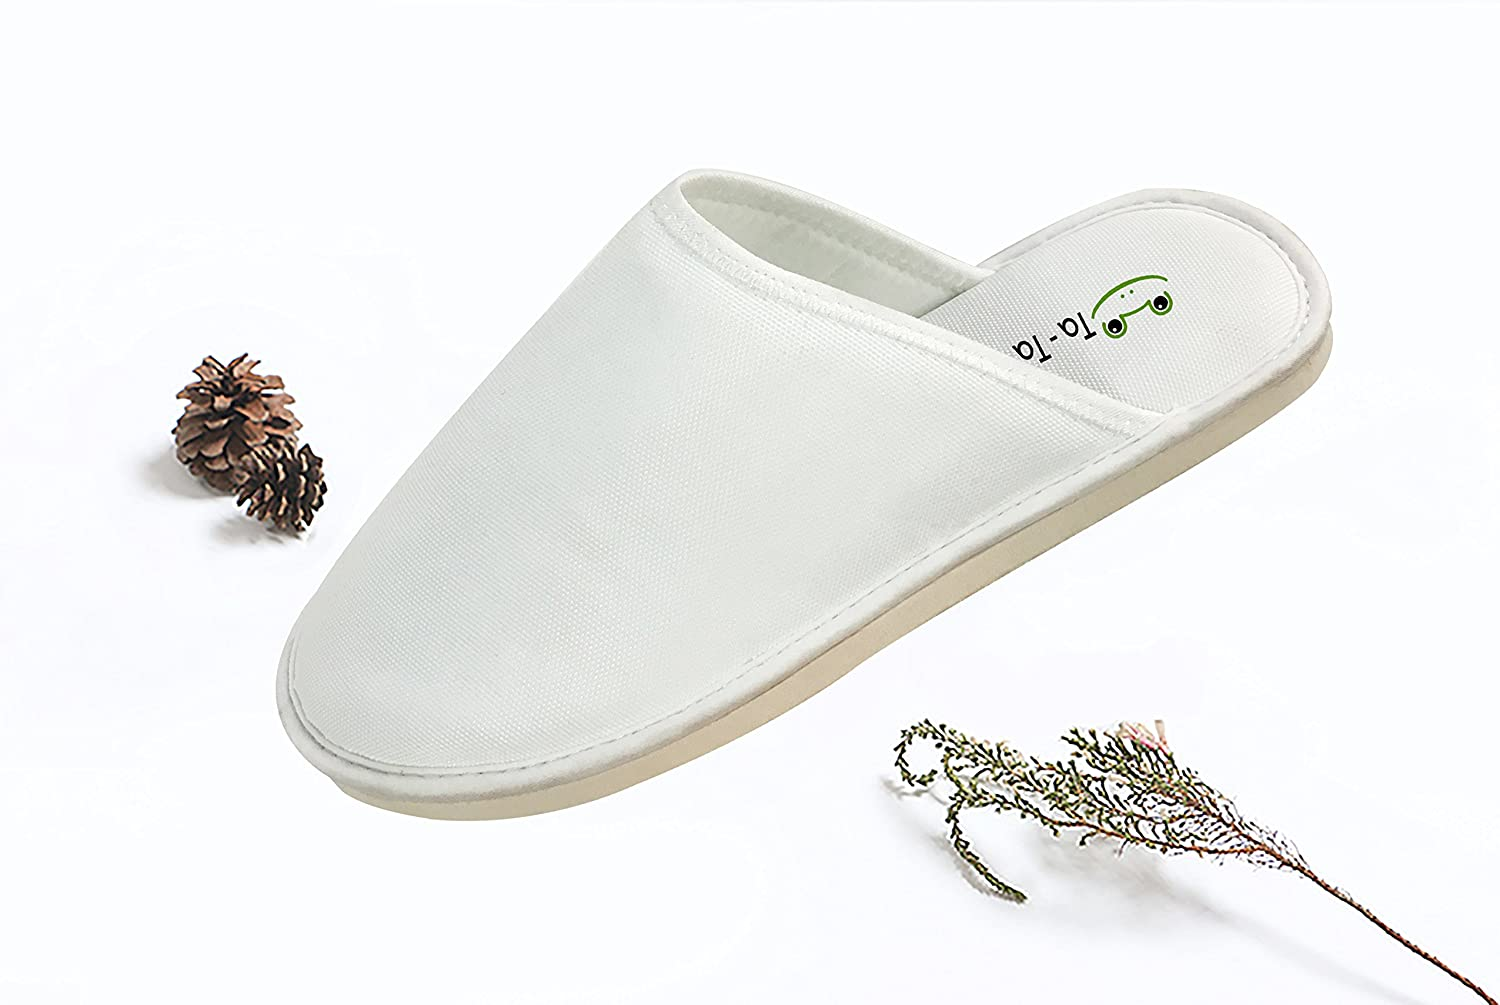 KOUY Salty Avocado Closed Toe Cotton Slippers Warm Soft Indoor Shoes Non-watertight